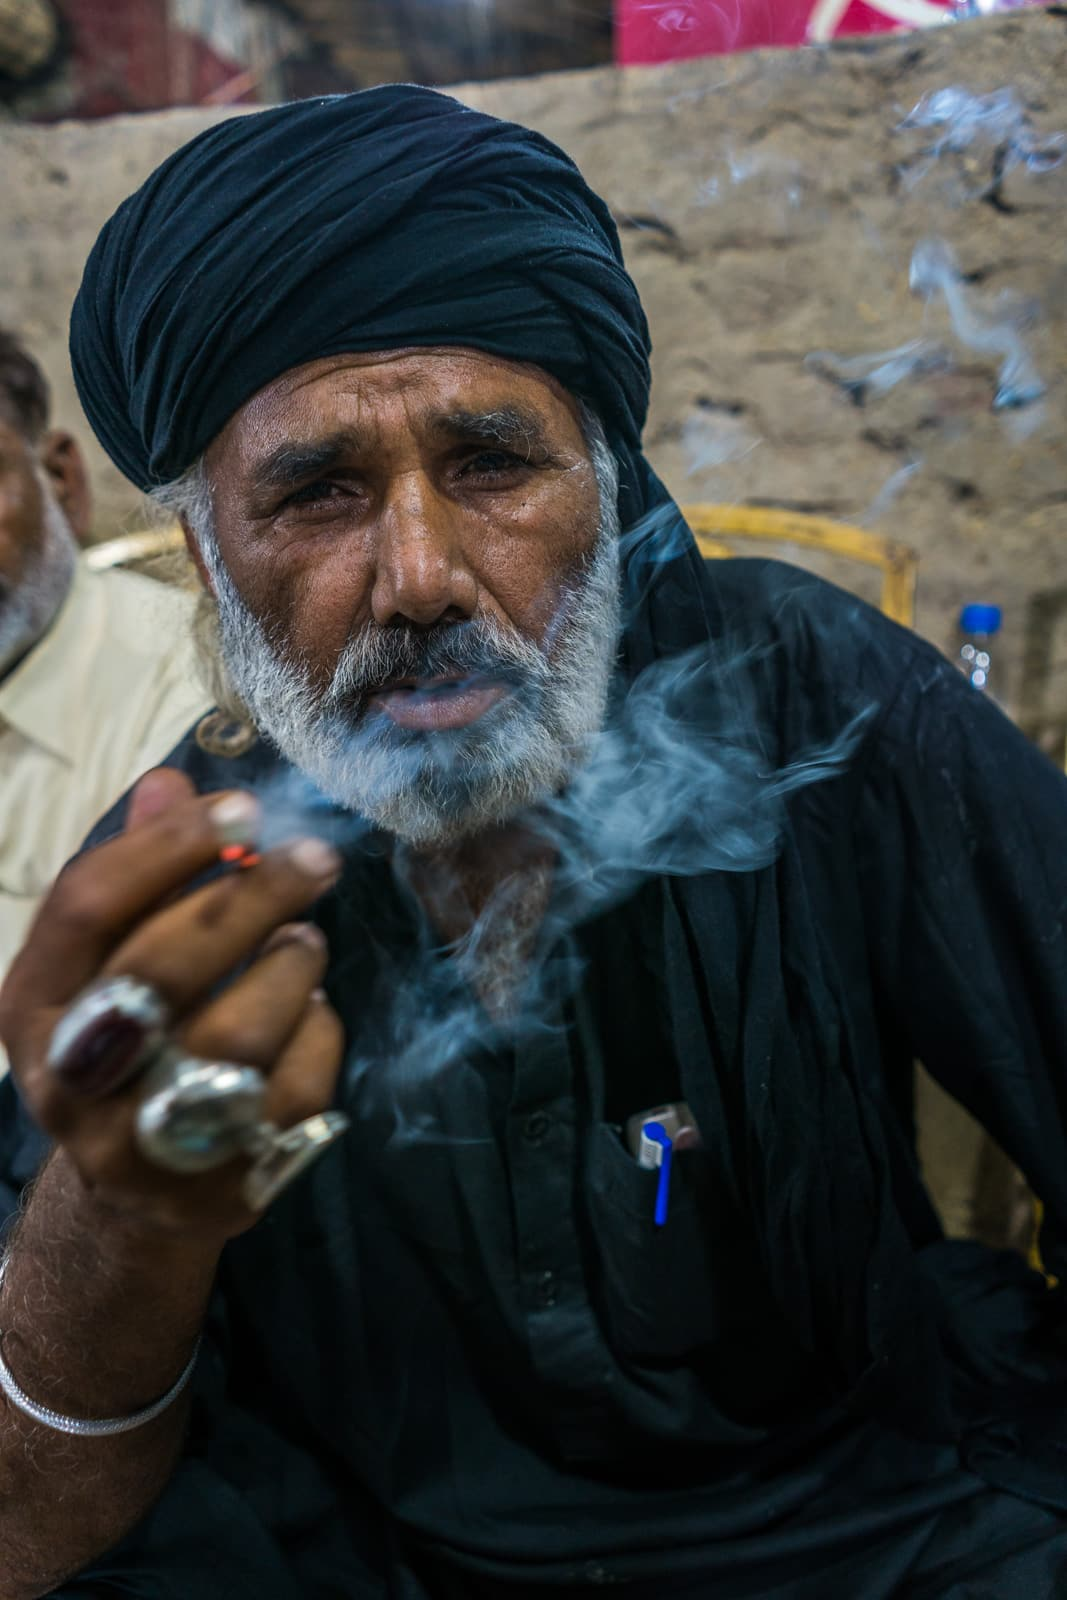 A Sufi melang in black smoking a cigarette at the Urs of Lal Shahbaz Qalandar in Sehwan Sharif, Pakistan.